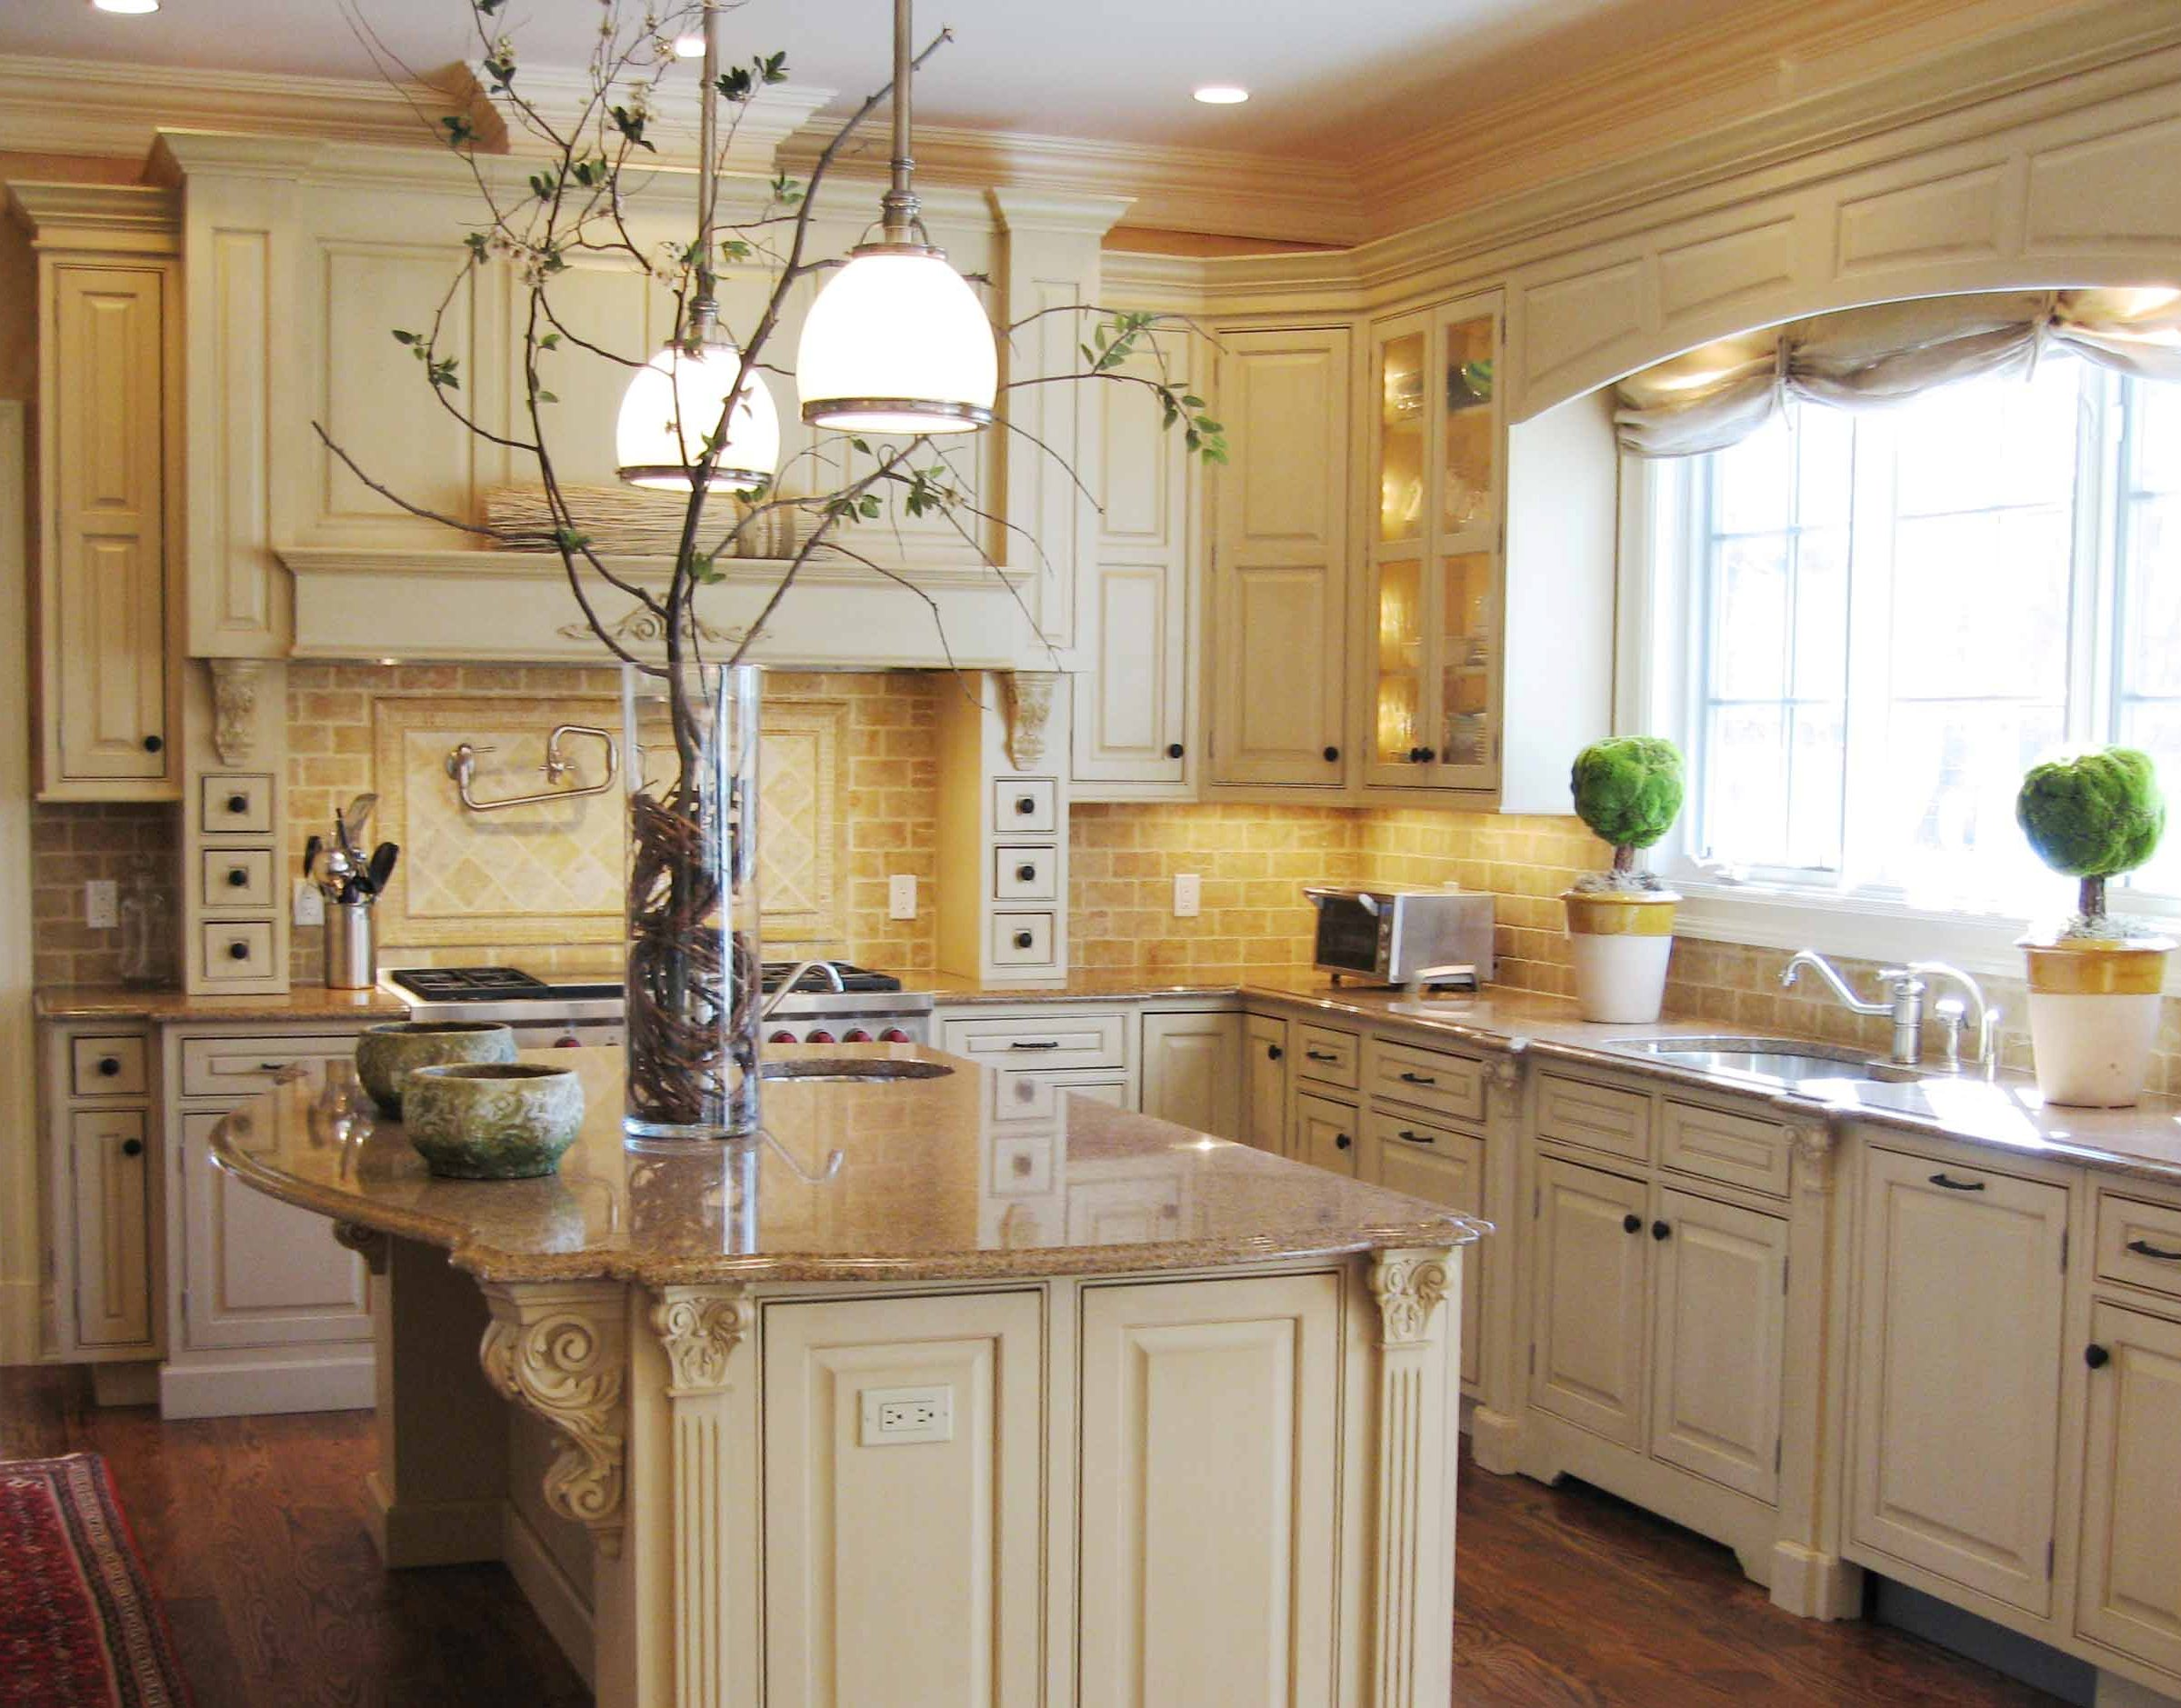 Can You Paint Countertops Formica Alluring Tuscan Kitchen Design Ideas With A Warm